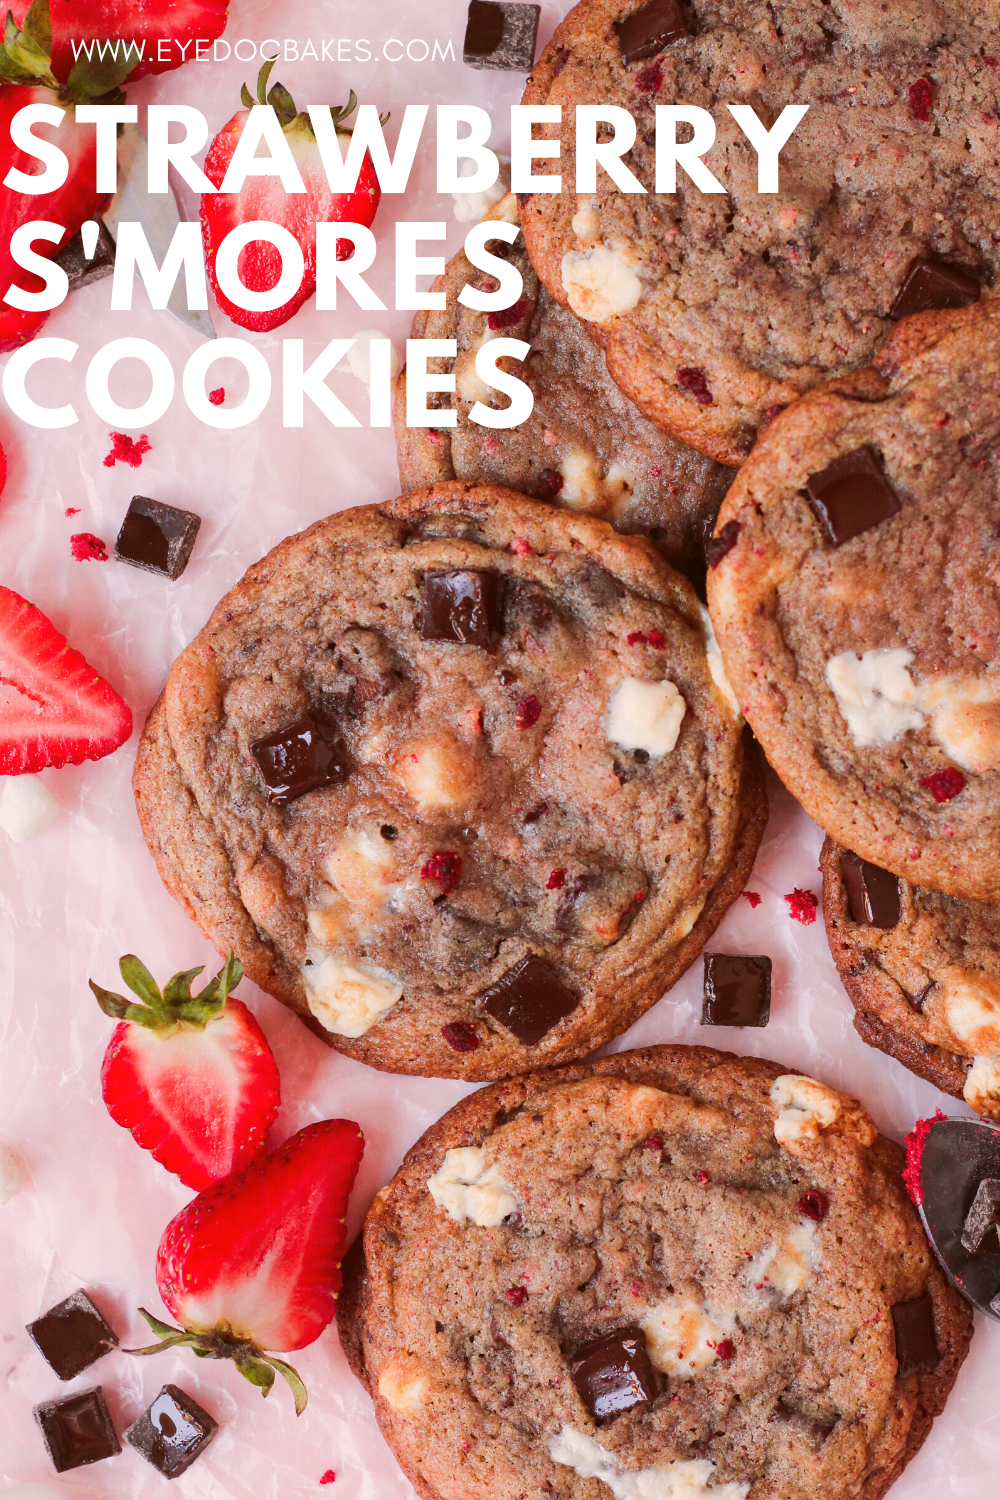 chewy and delicious strawberry s'mores cookies with marshmallows, chocolate chunks, and freeze dried strawberries